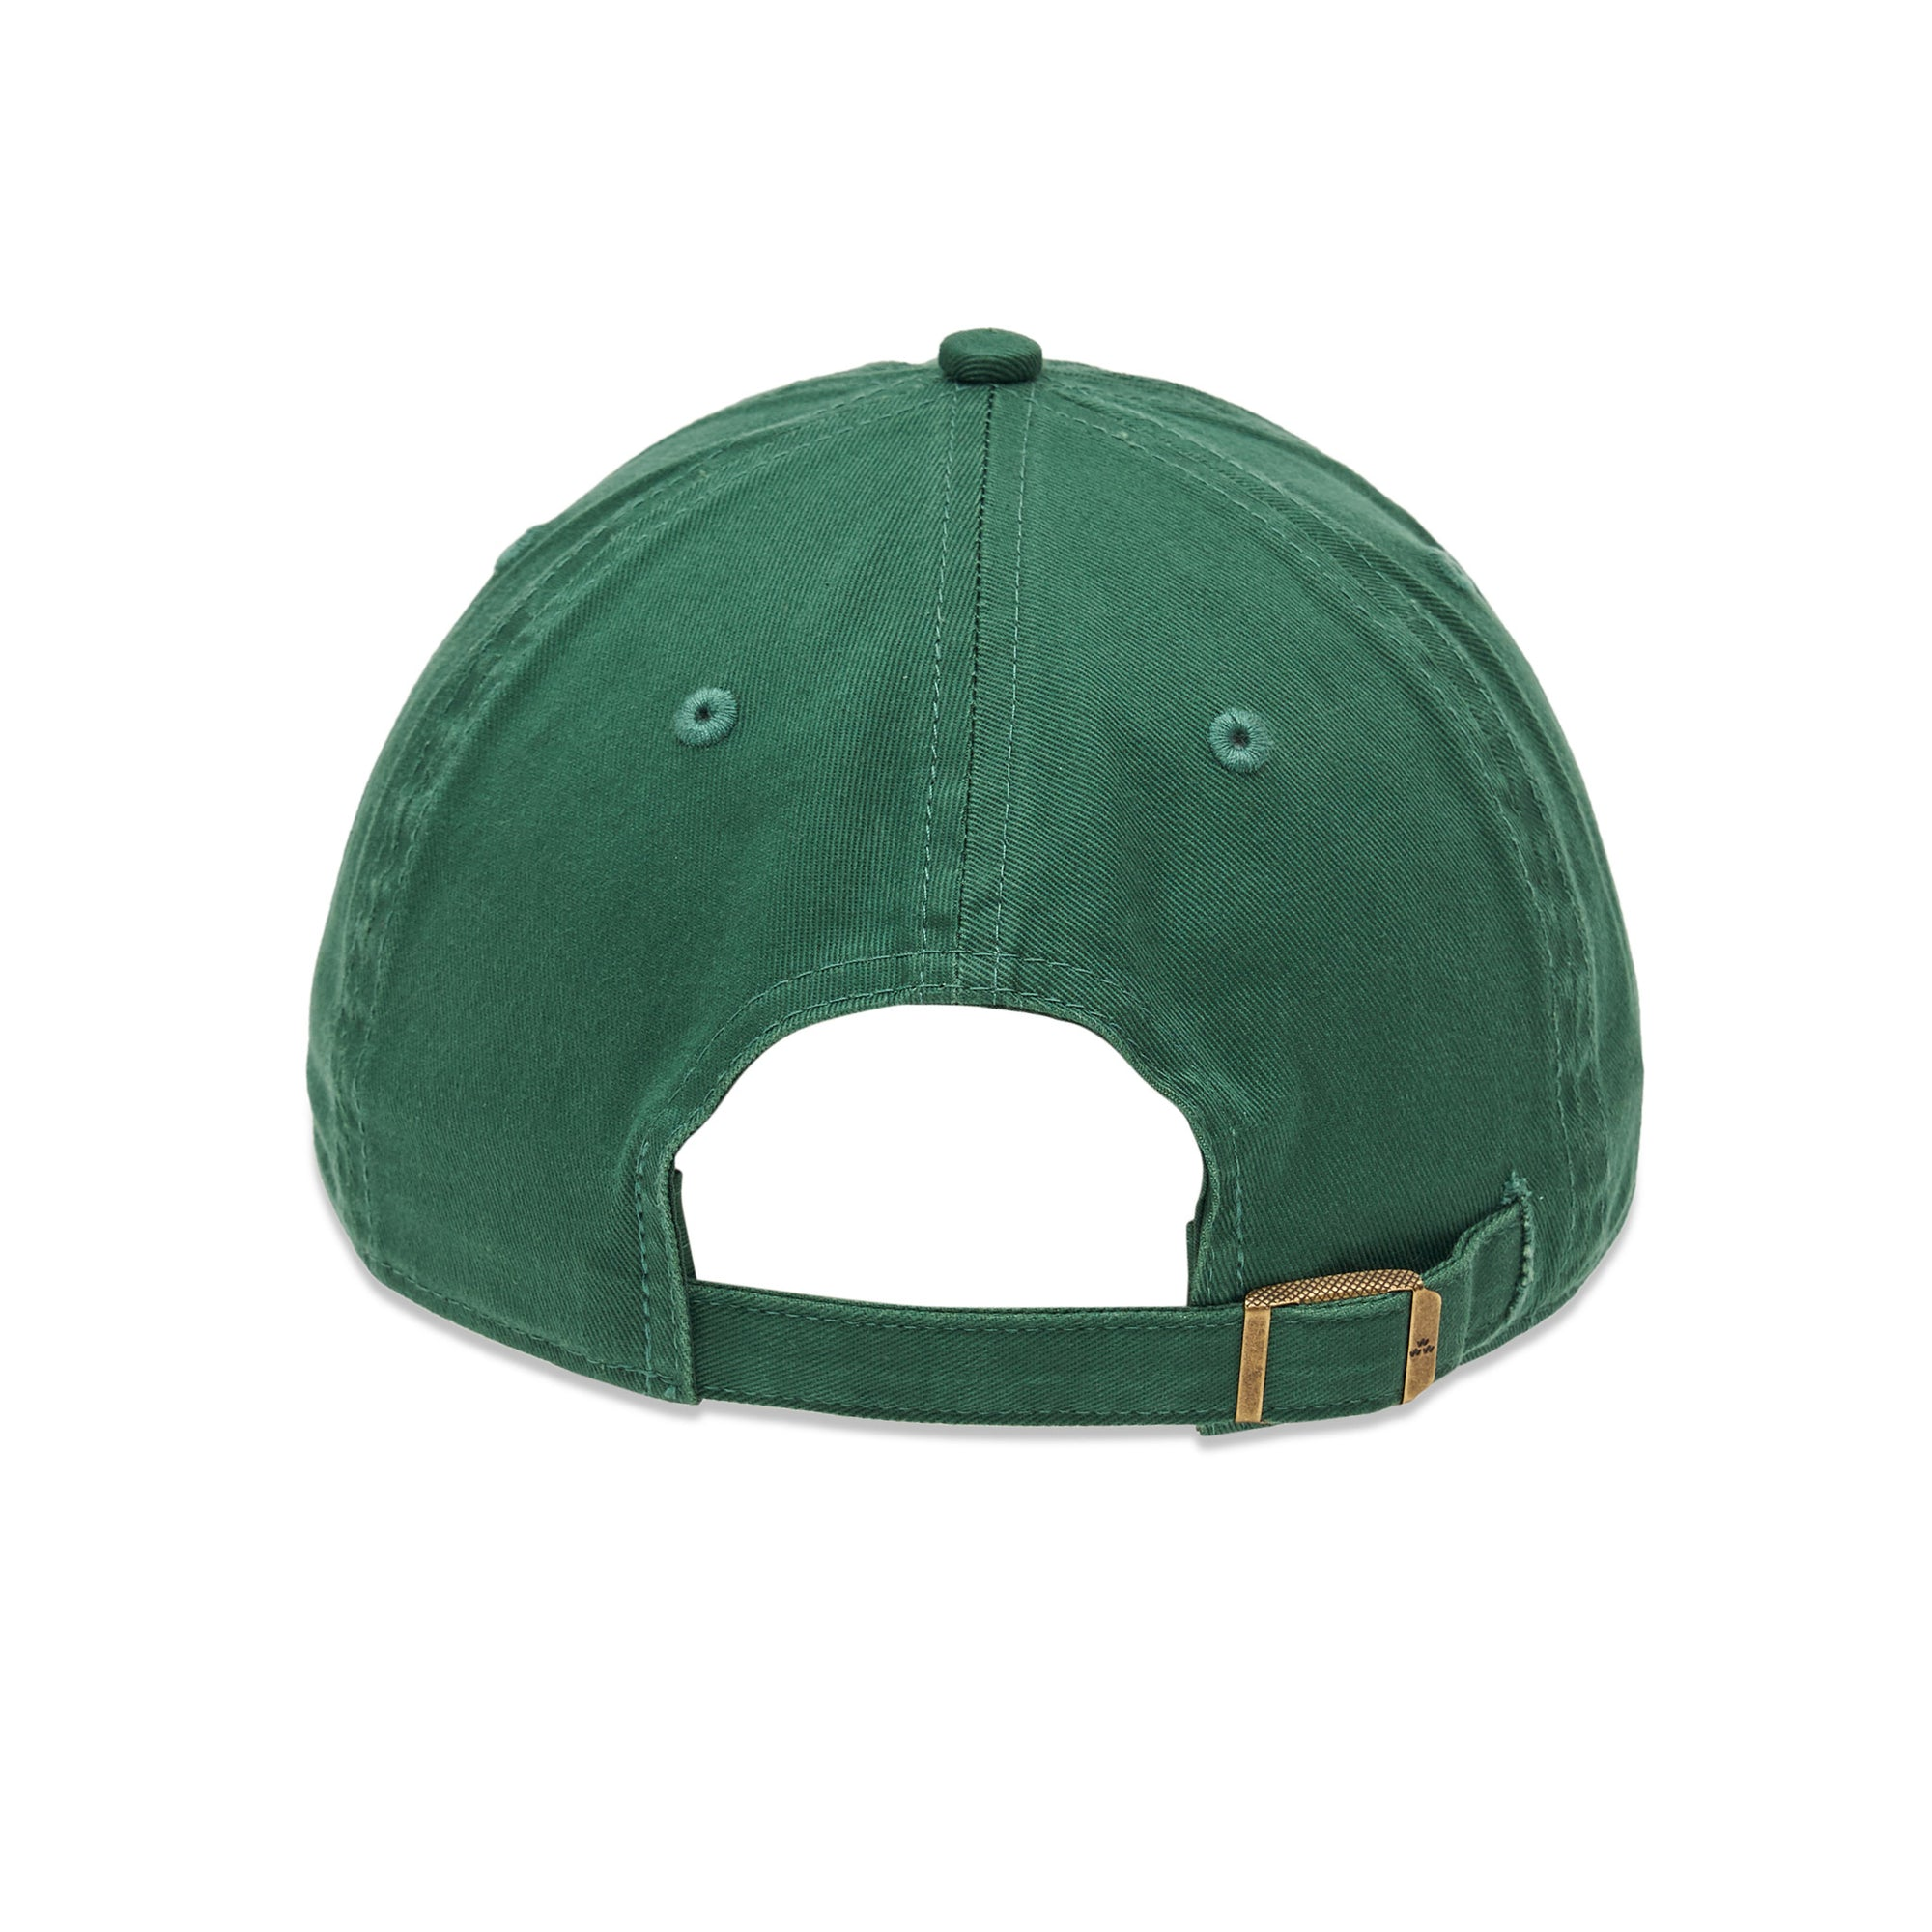 birds-of-condor-green-golf-broken-clubs-club-dad-cap-hat-front